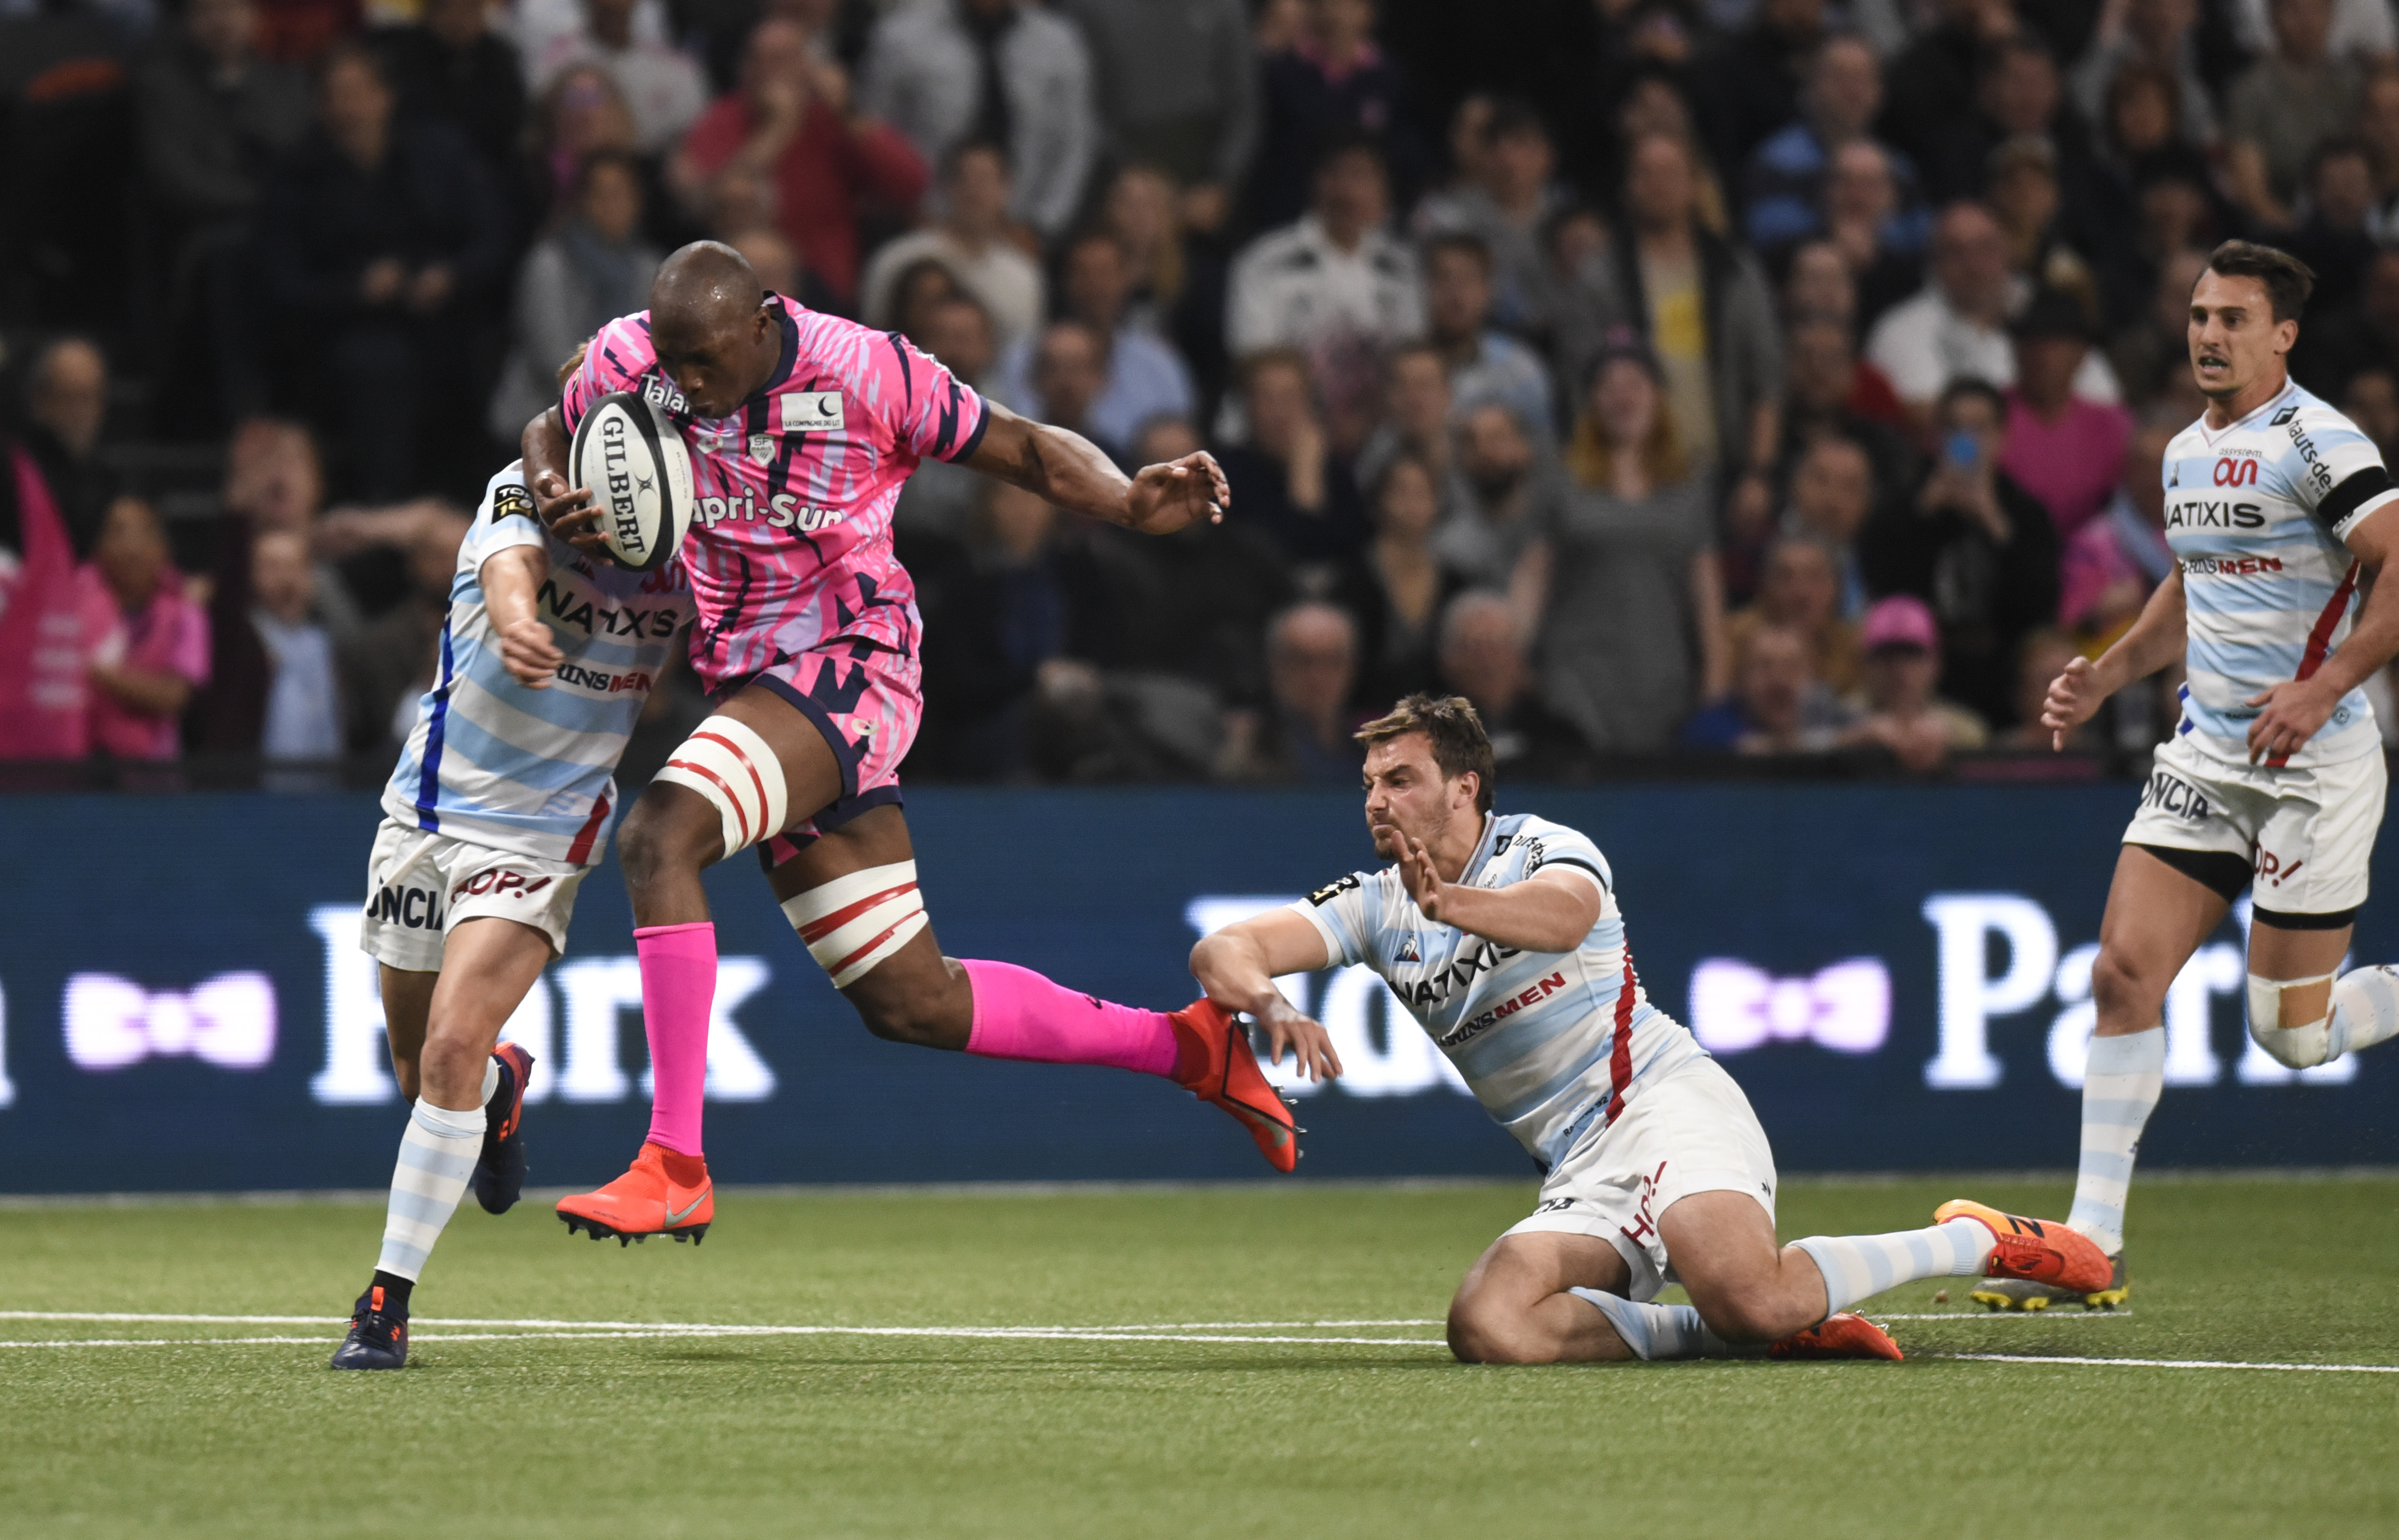 Rugby - Top 14 - Macalou : «Le Stade Français avait plus envie que le Racing»